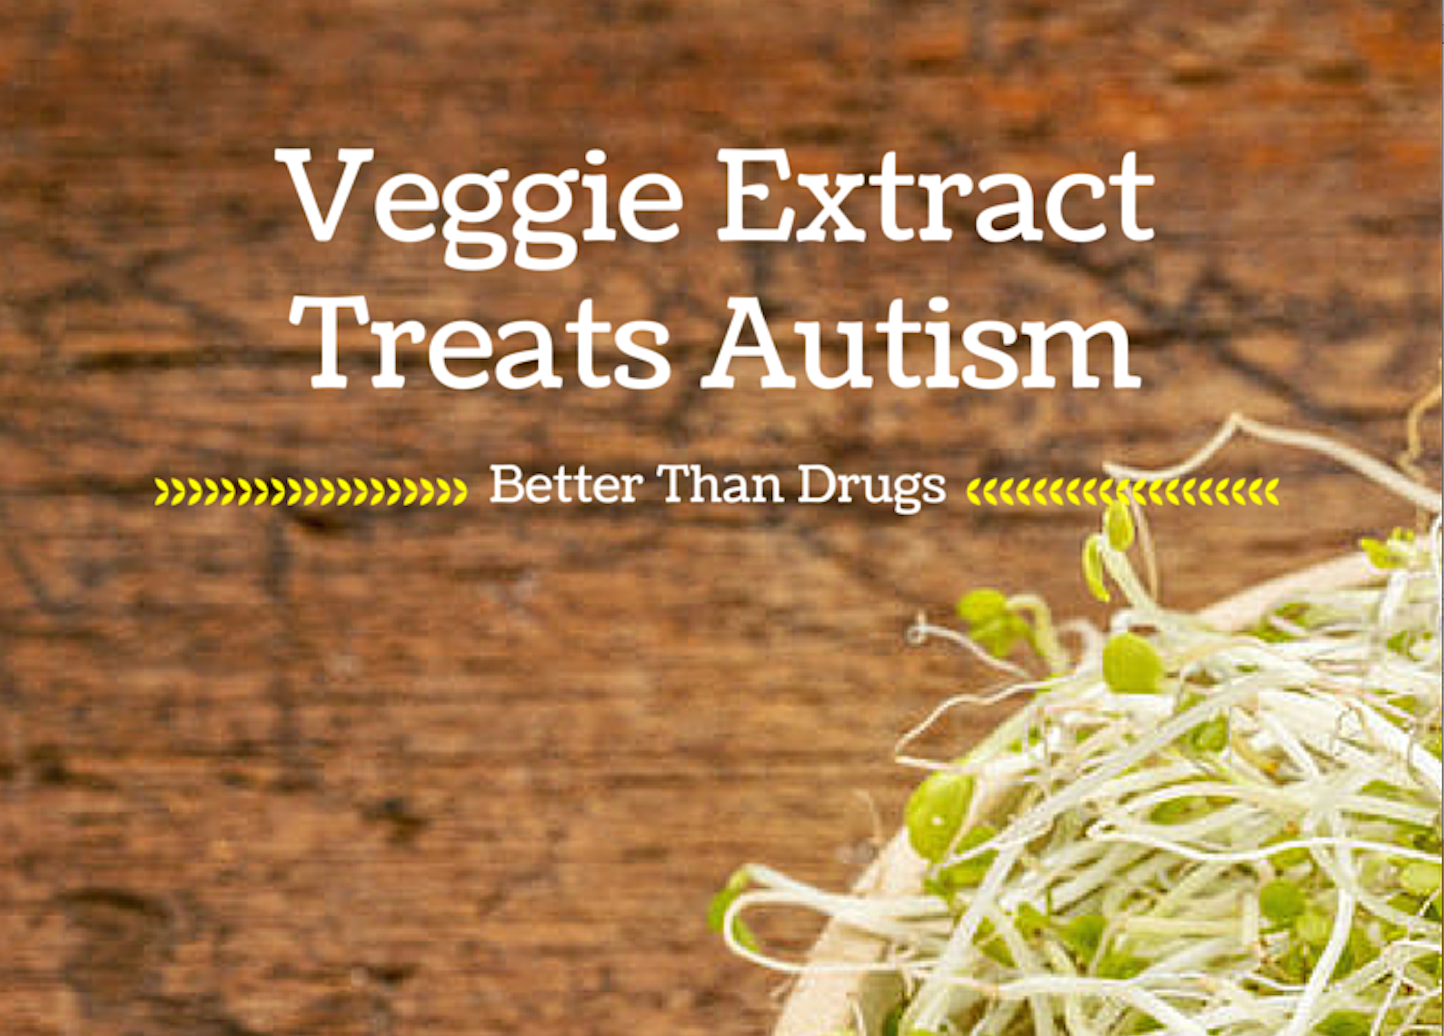 Vegetable Extract Treats Autism Better Than Drugs